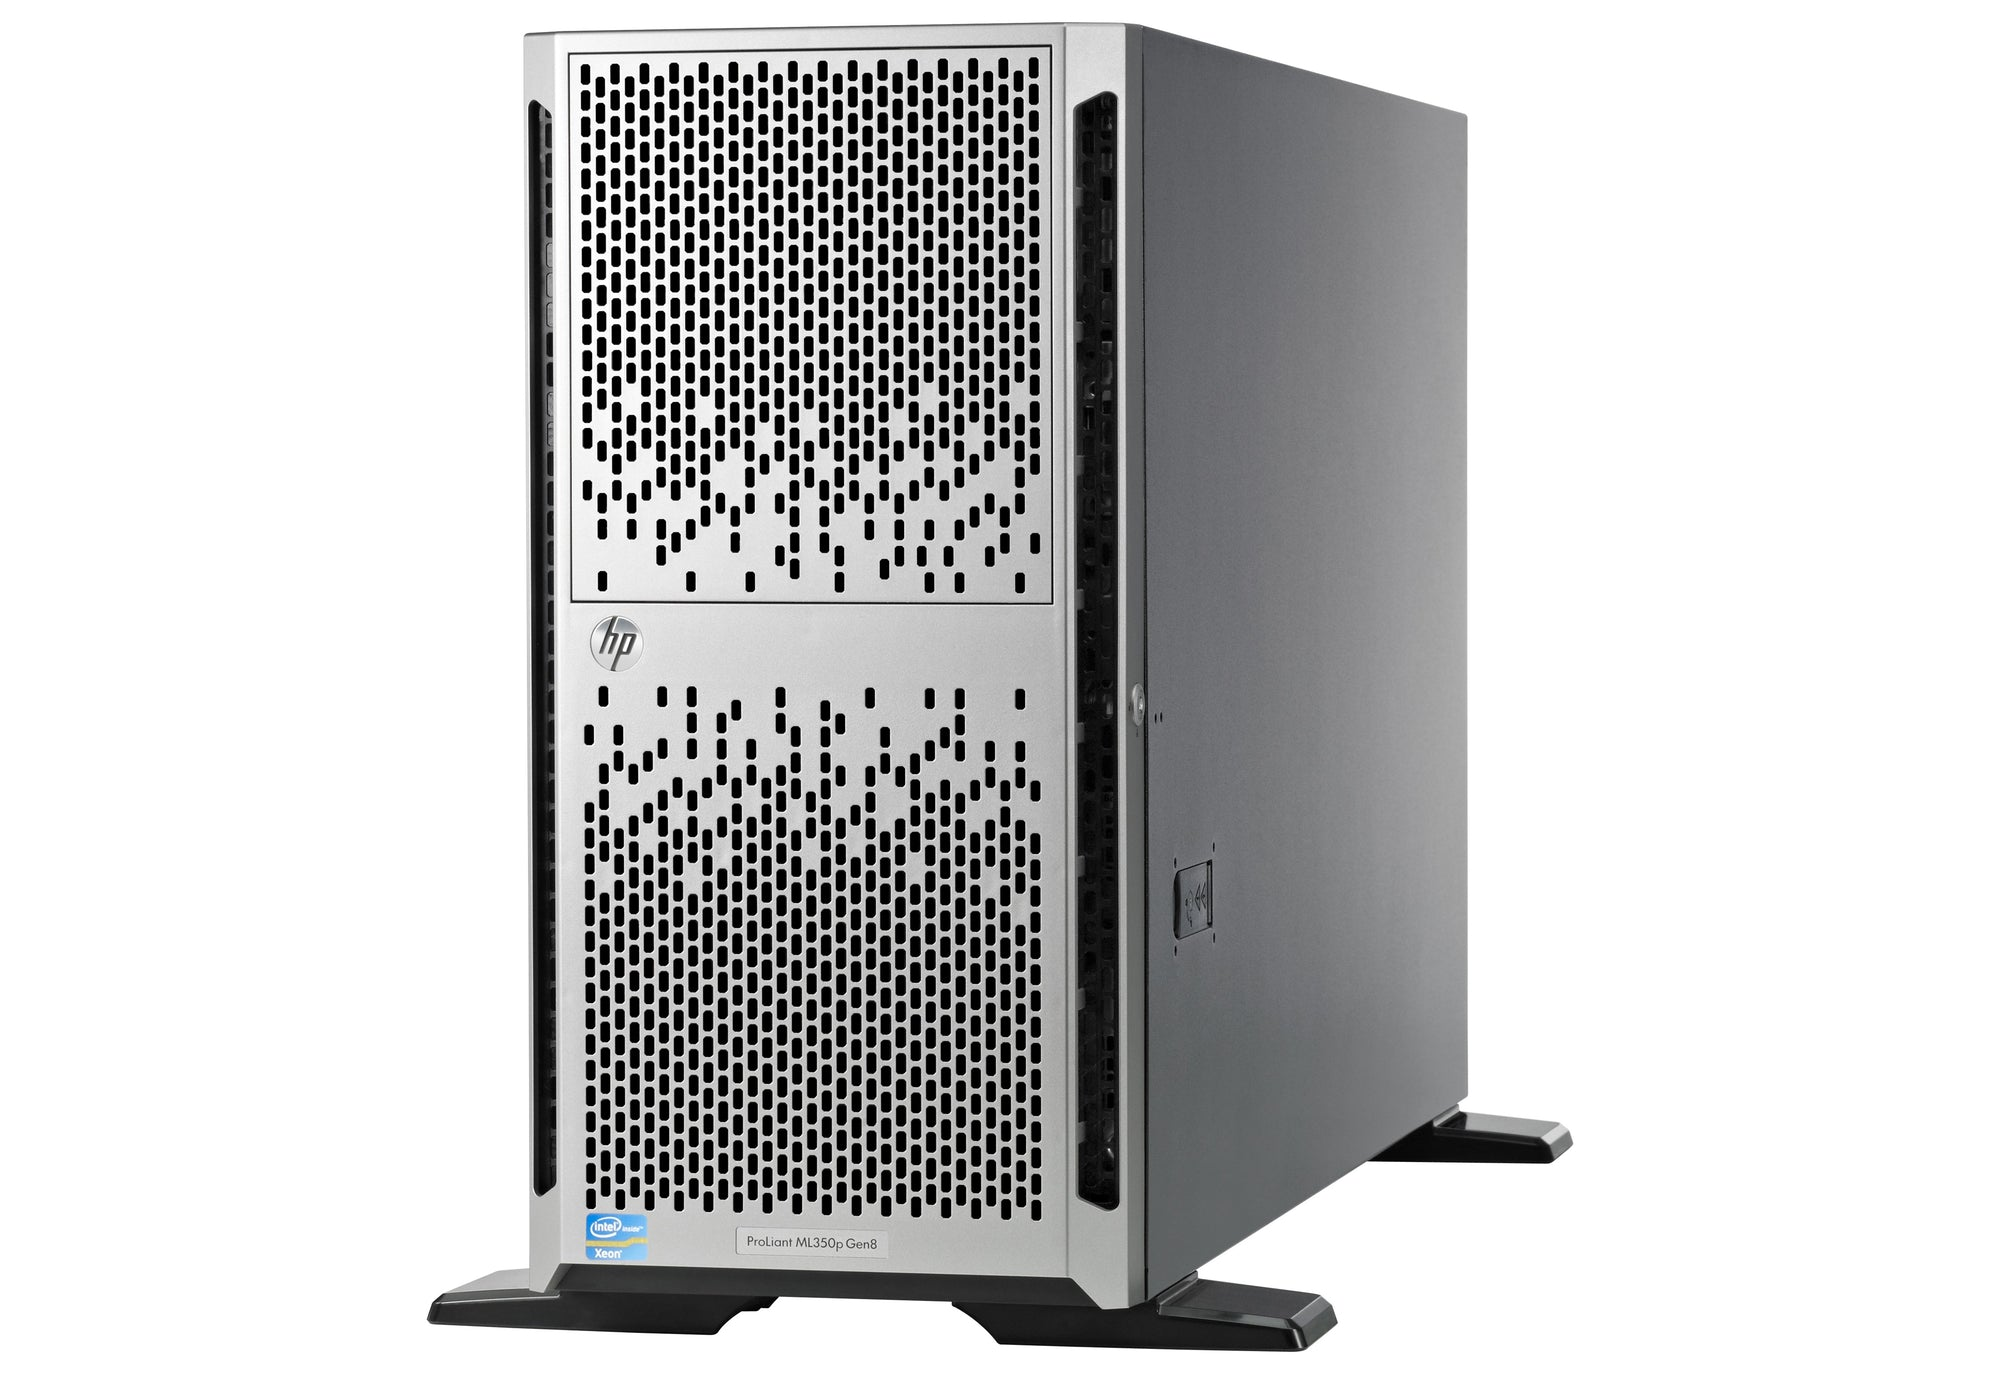 Refurbished HPE ProLiant ML350p Gen8 Configure to Order Rack Tower Server